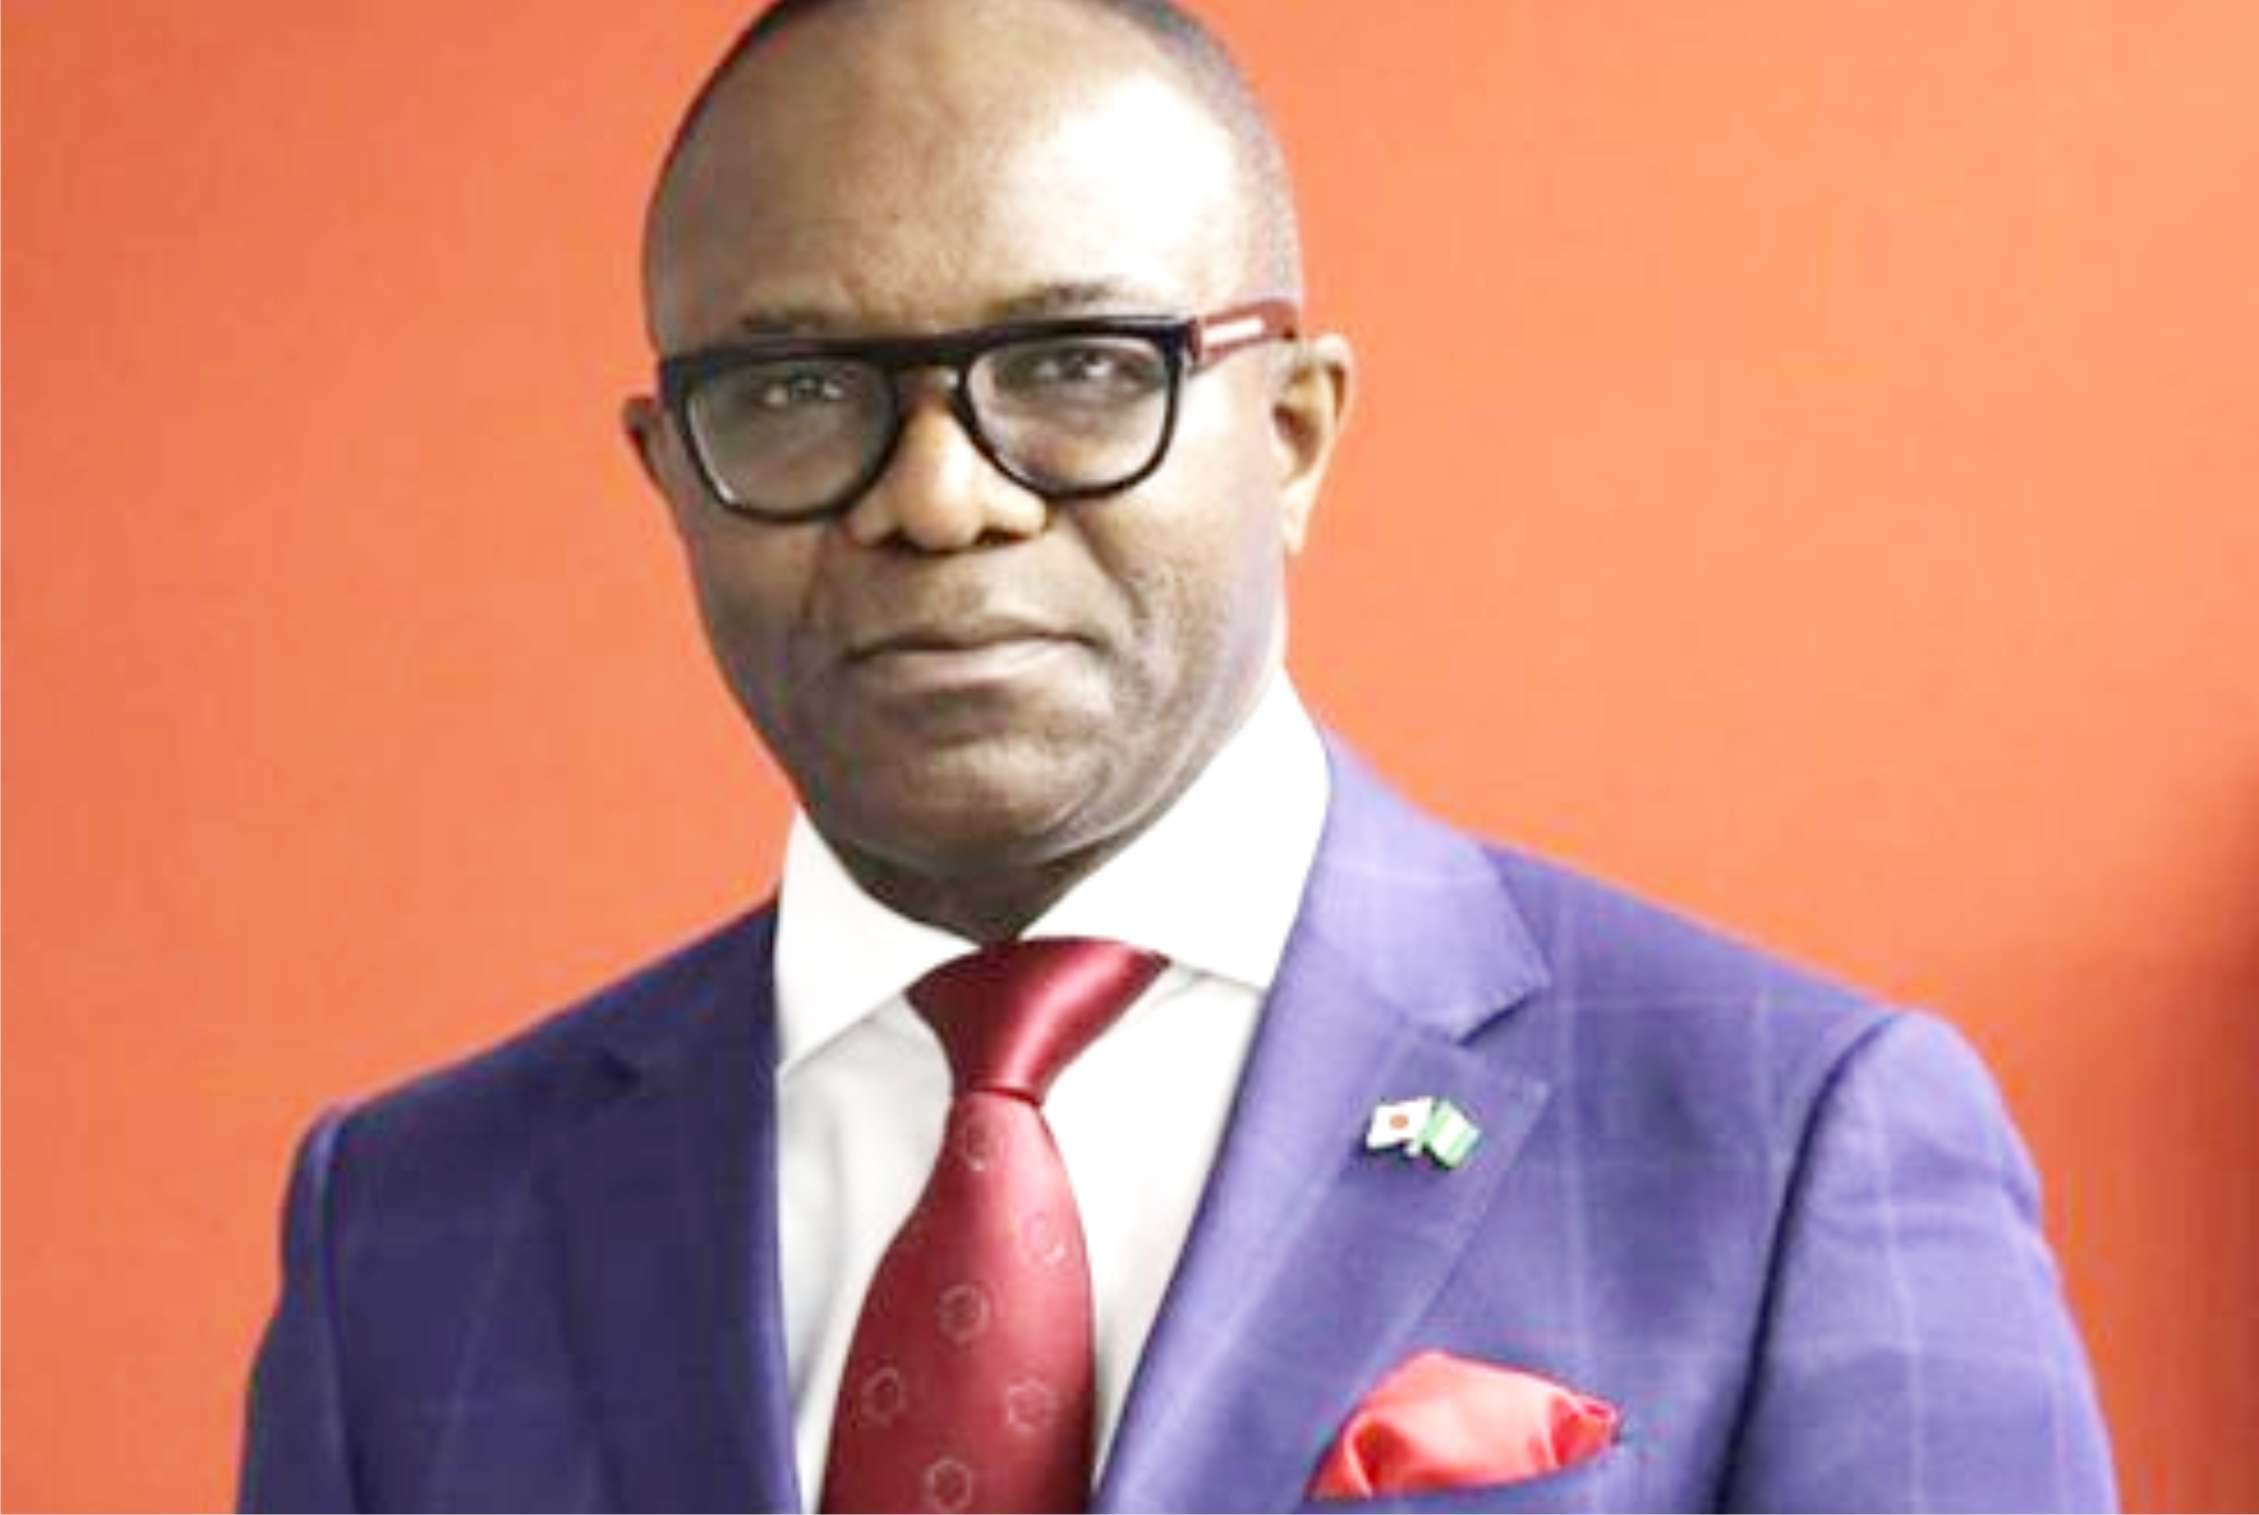 •Minister of State for Petroleum, Ibe Kachikwu